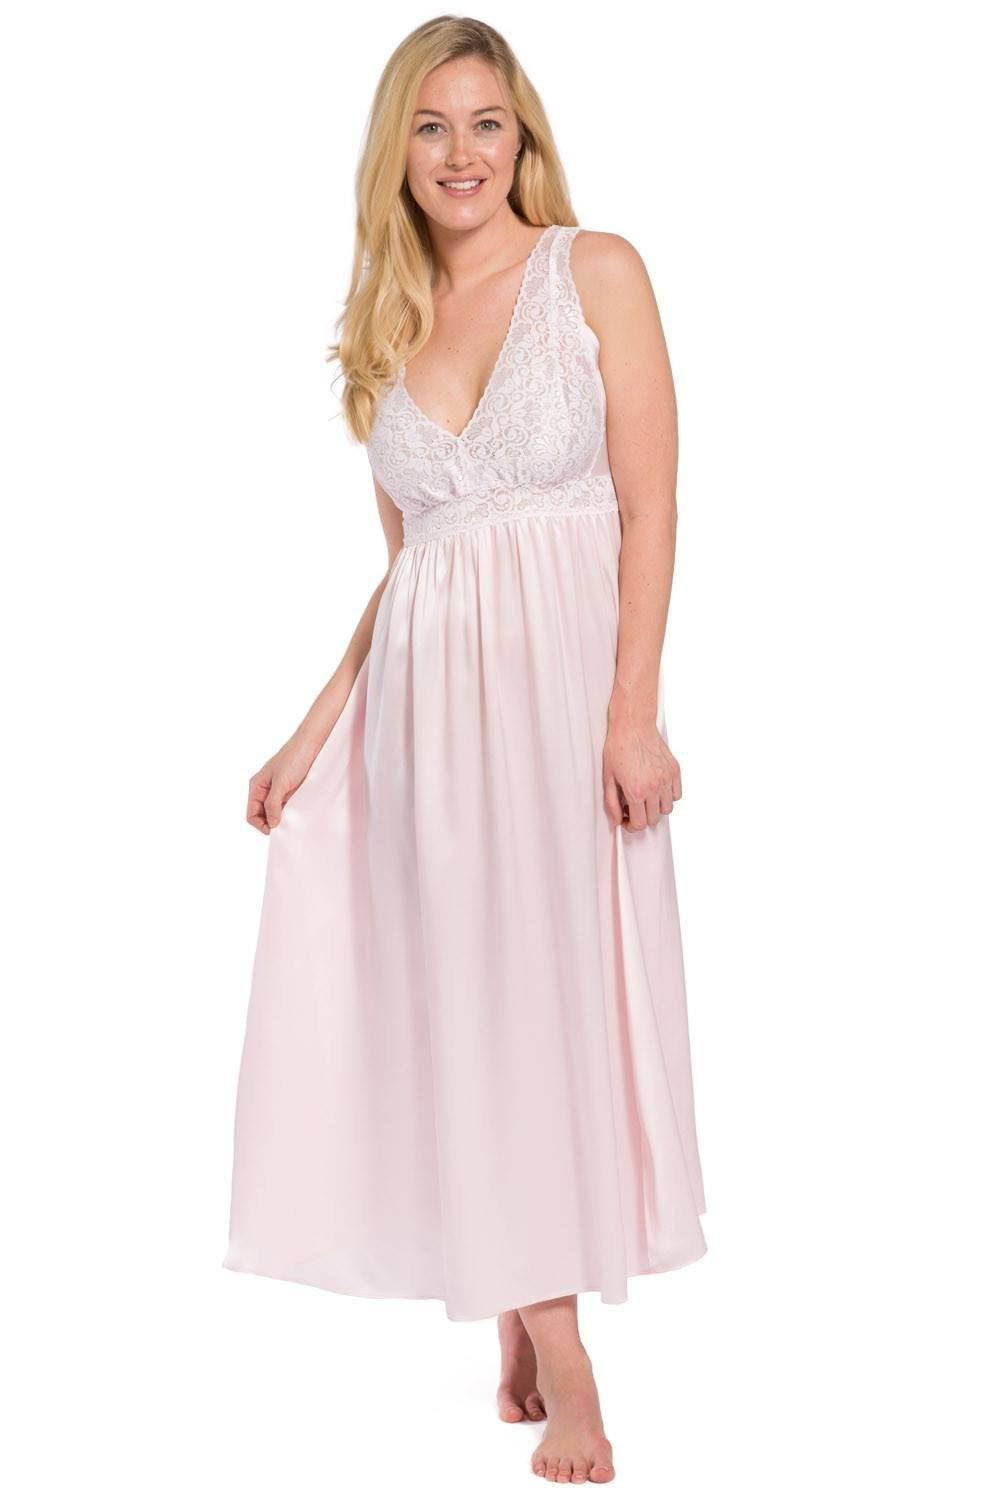 Women s 100% Pure Mulberry Silk Long Nightgown with Lace Bodice - Fishers  Finery df4de7a6d0